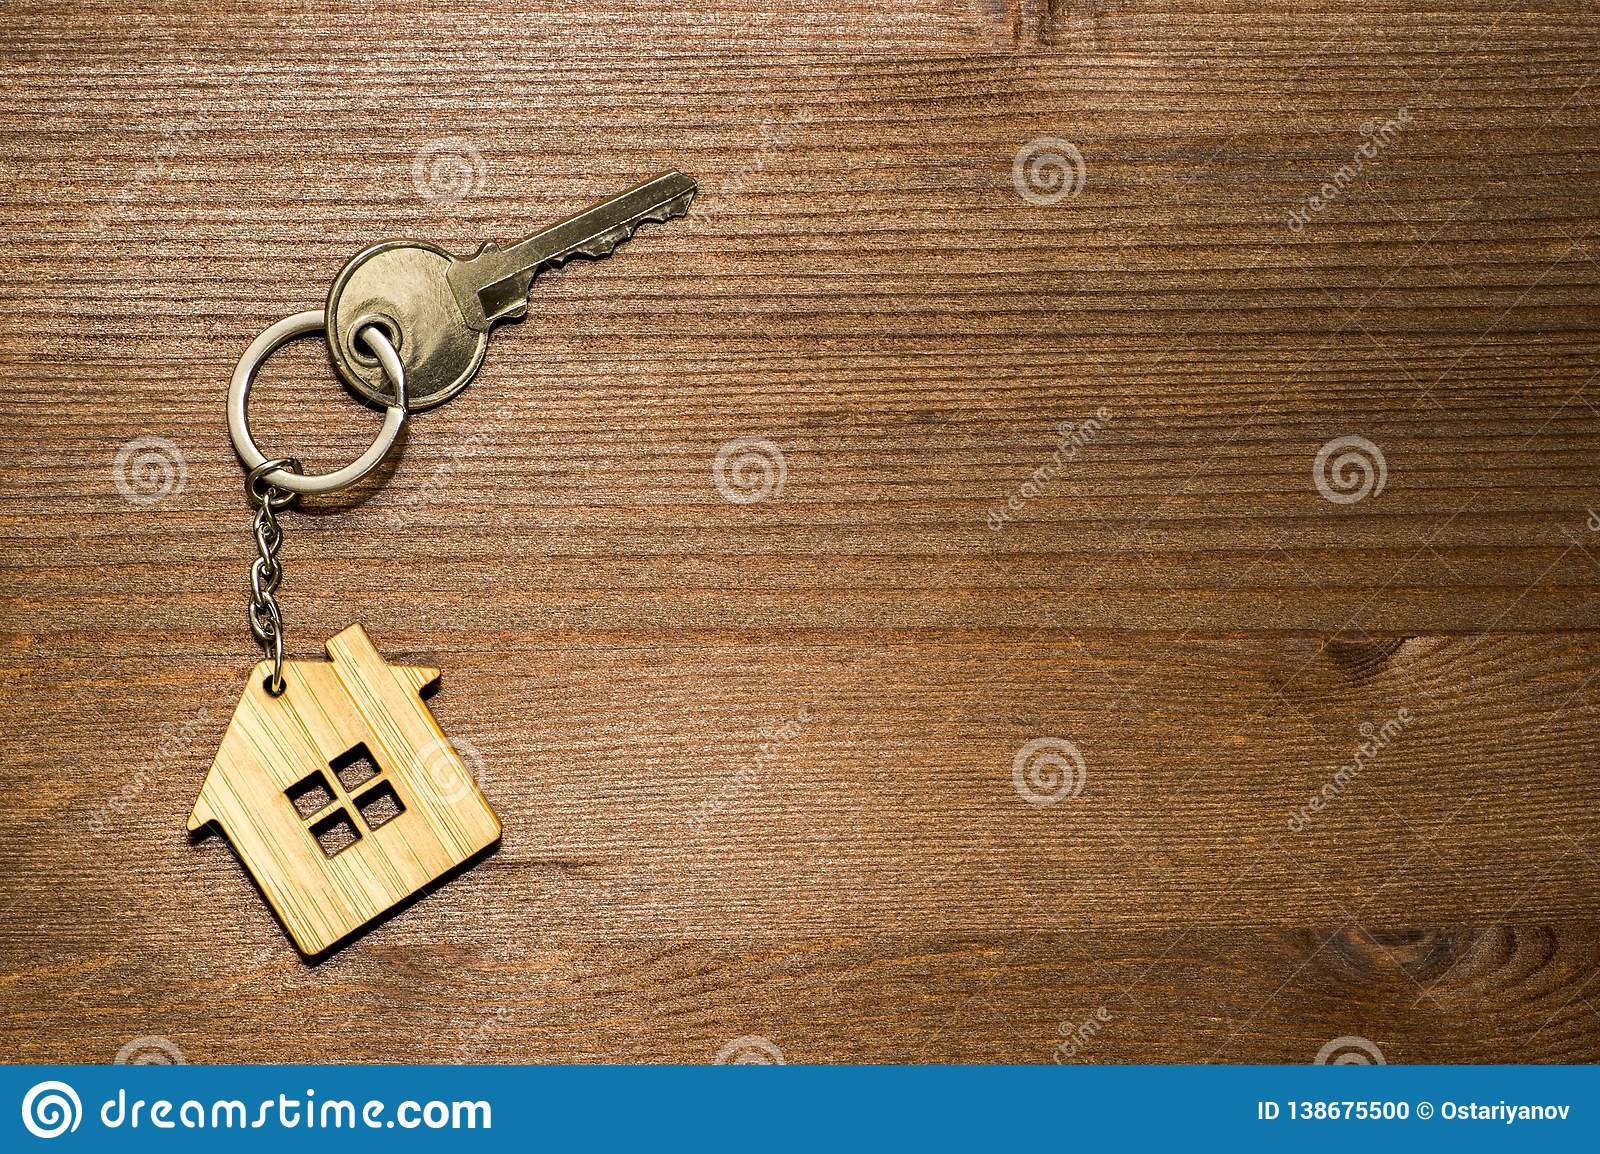 The Symbol Of The House In The Form Of A Keychain With A